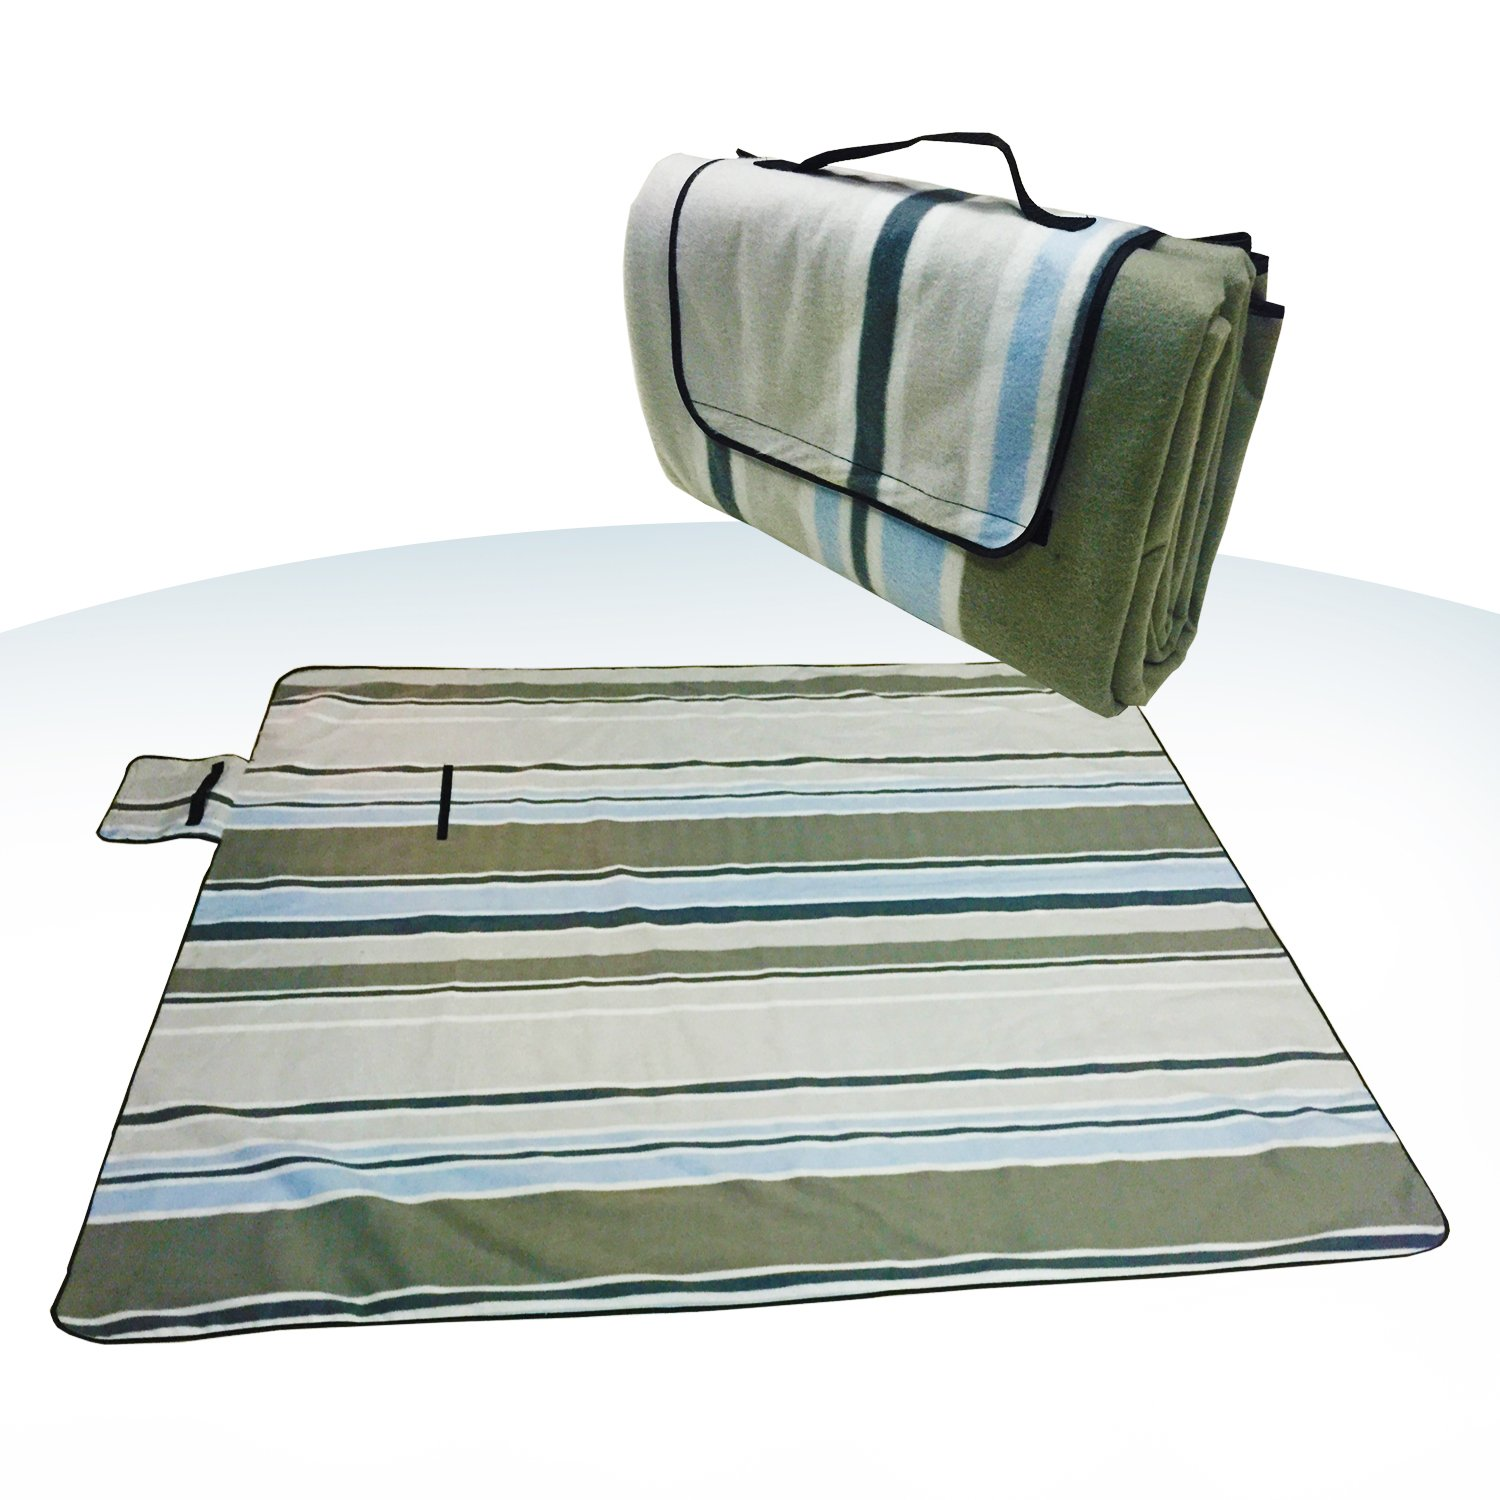 [Pack of 5] XXX-Large 70x80'' Picnic Blanket Waterproof bottom Soft top Polar Fleece extra large outdoor travel water sand resistant camping Stripe fold perfect for grass, tablecloth or handy sandproof by Spencer&Webb (Image #2)